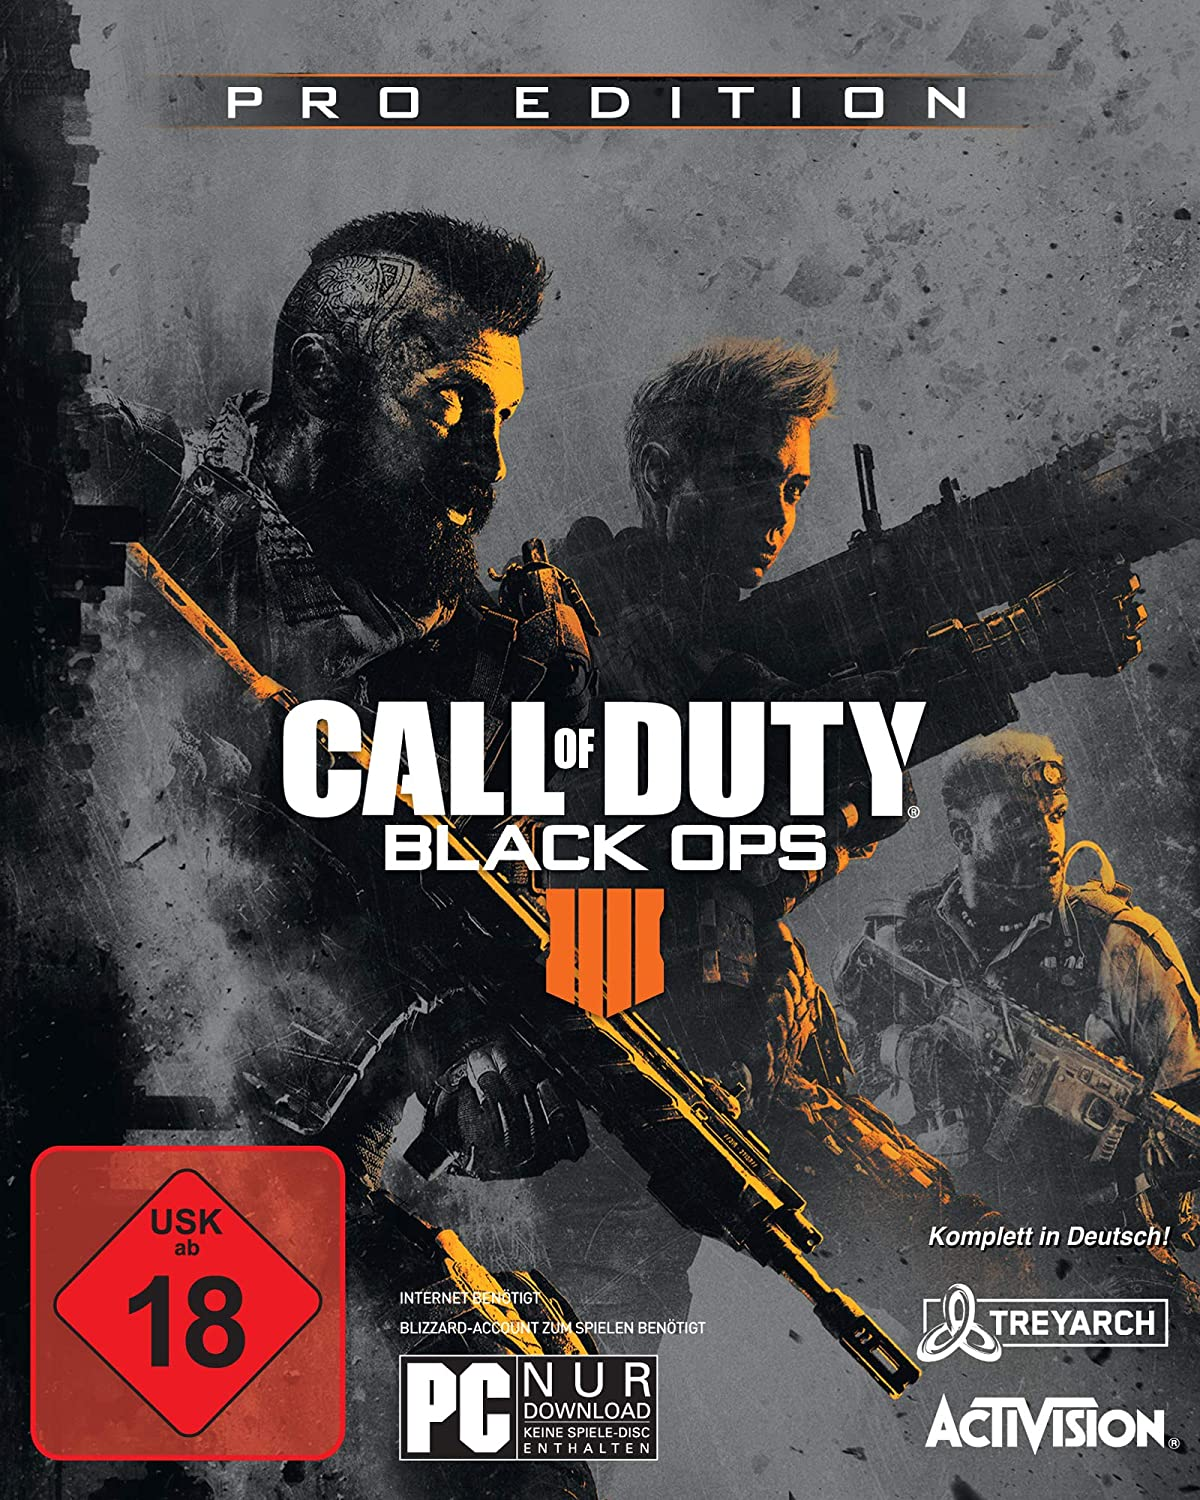 Call of Duty Black Ops 4 Pro Edition